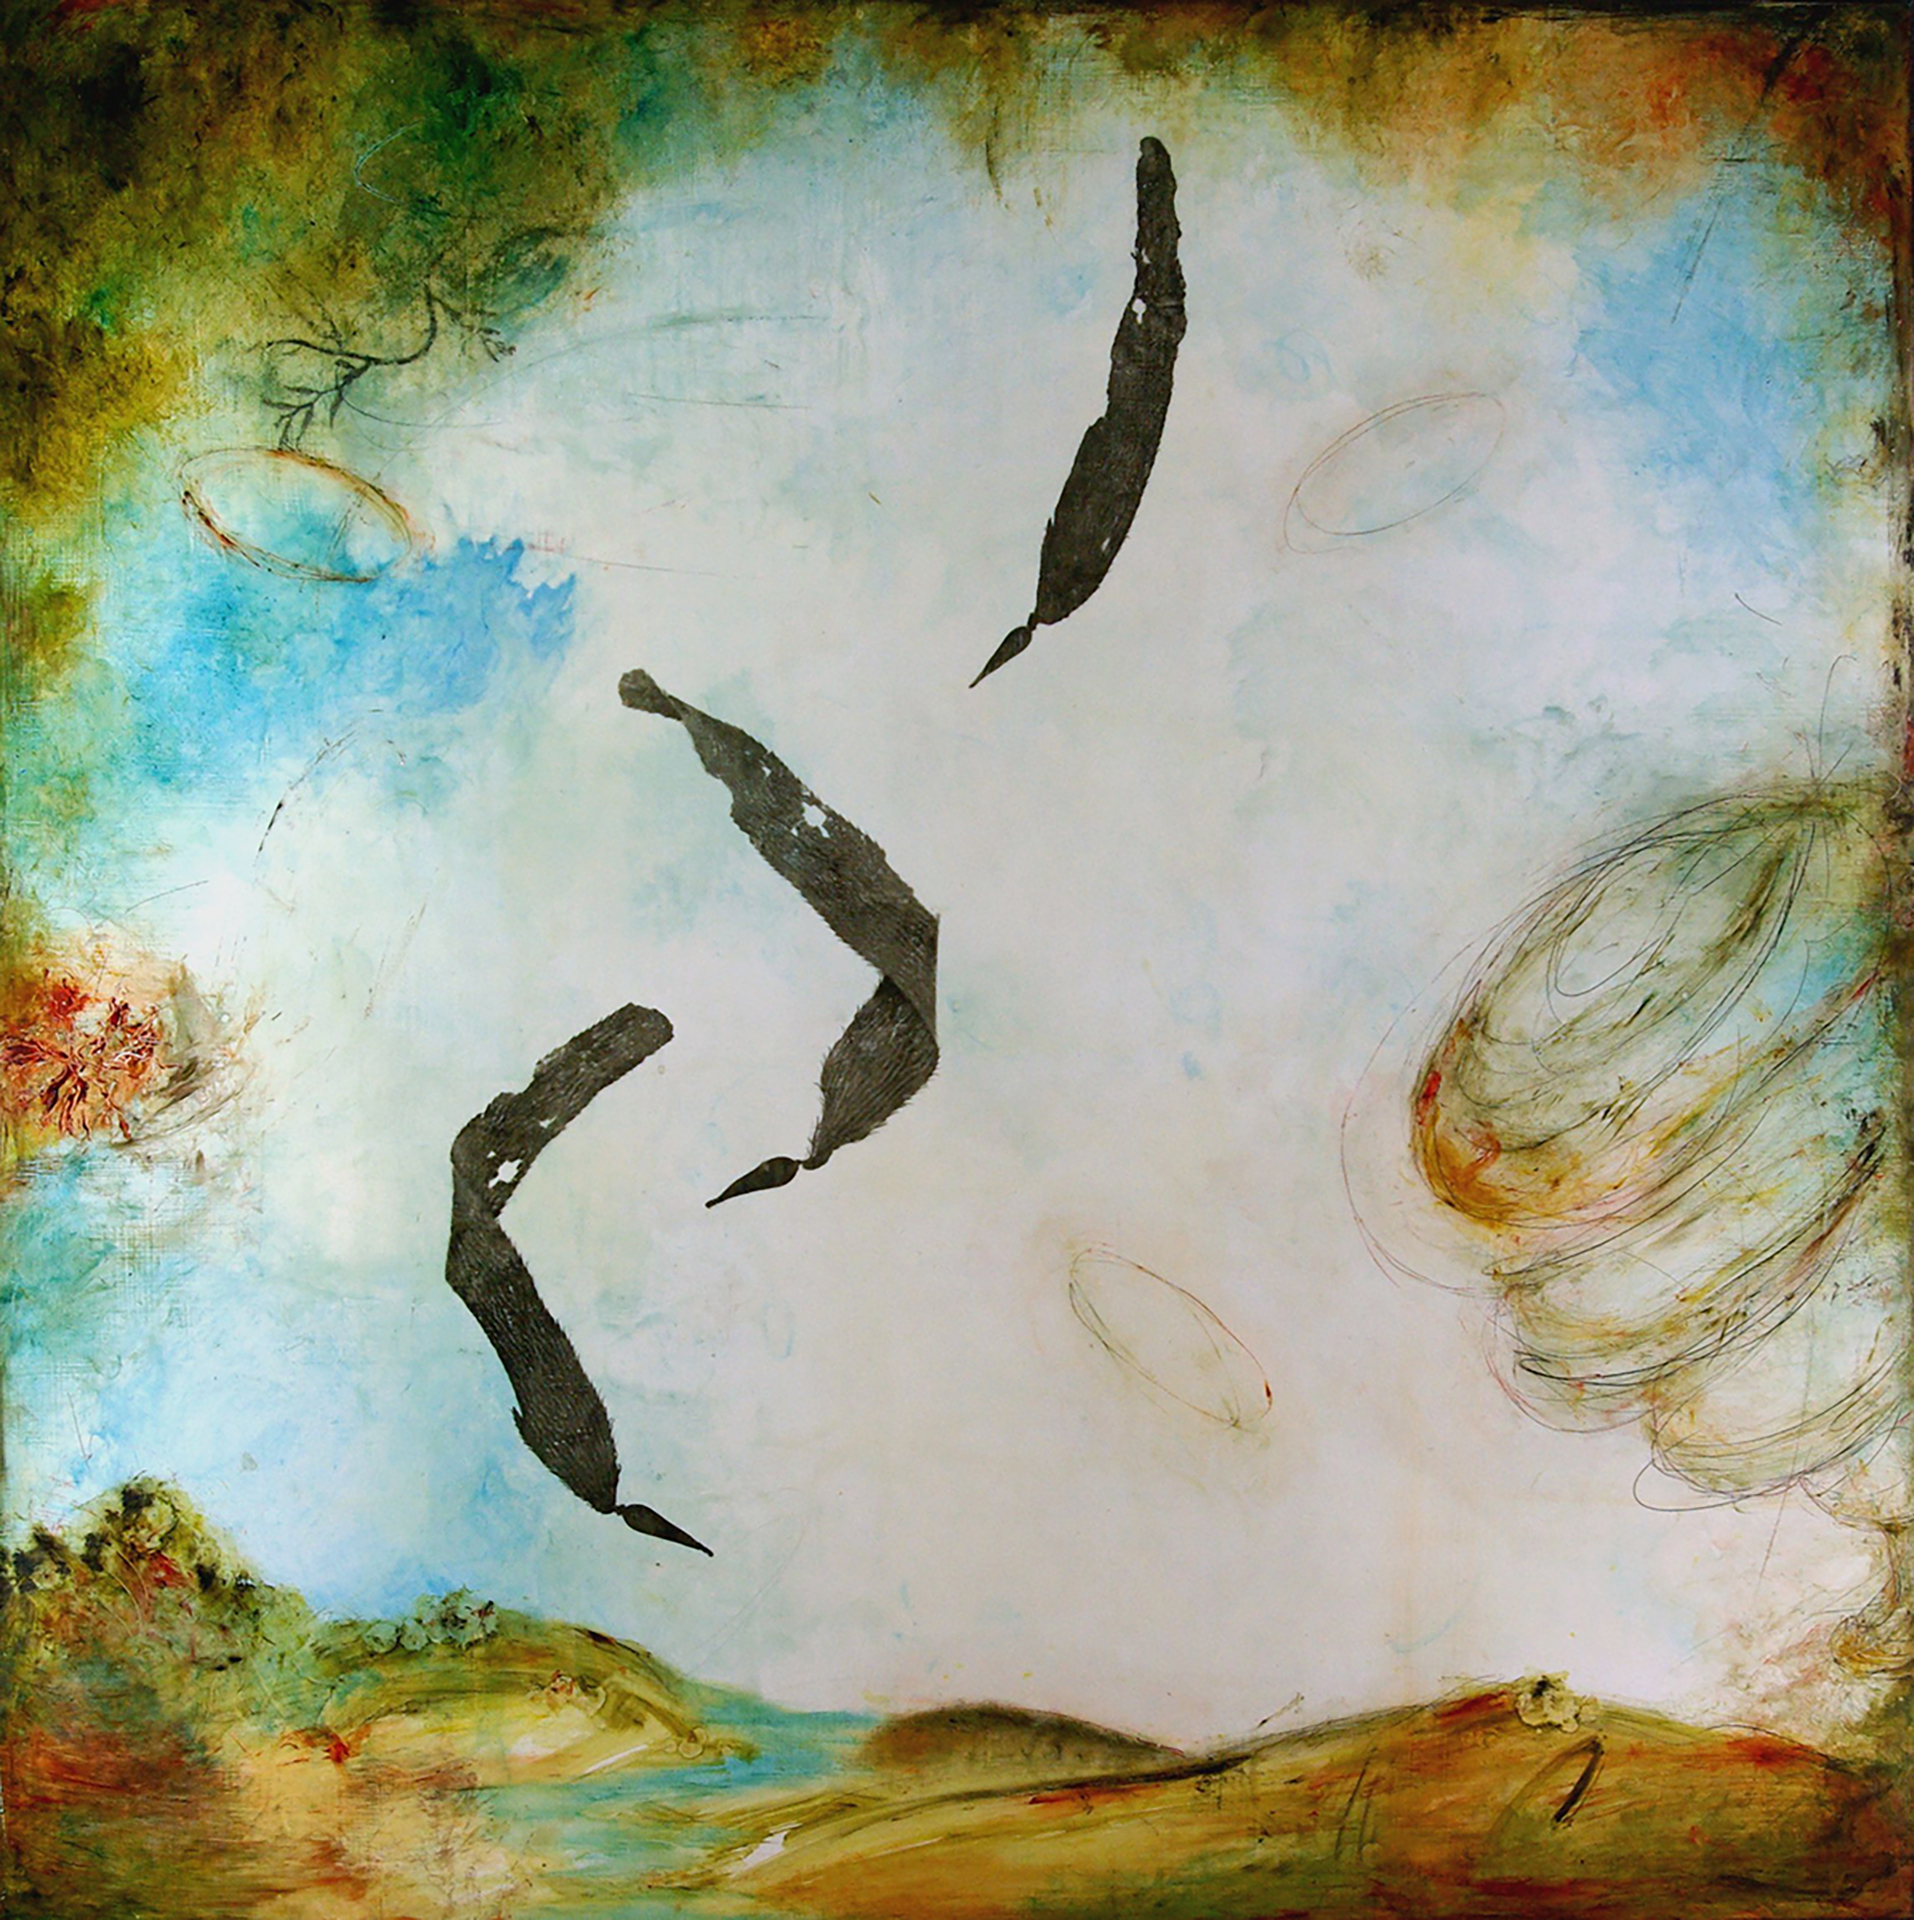 Molly Cliff Hilts, Atmospheric Disturbances, encaustic